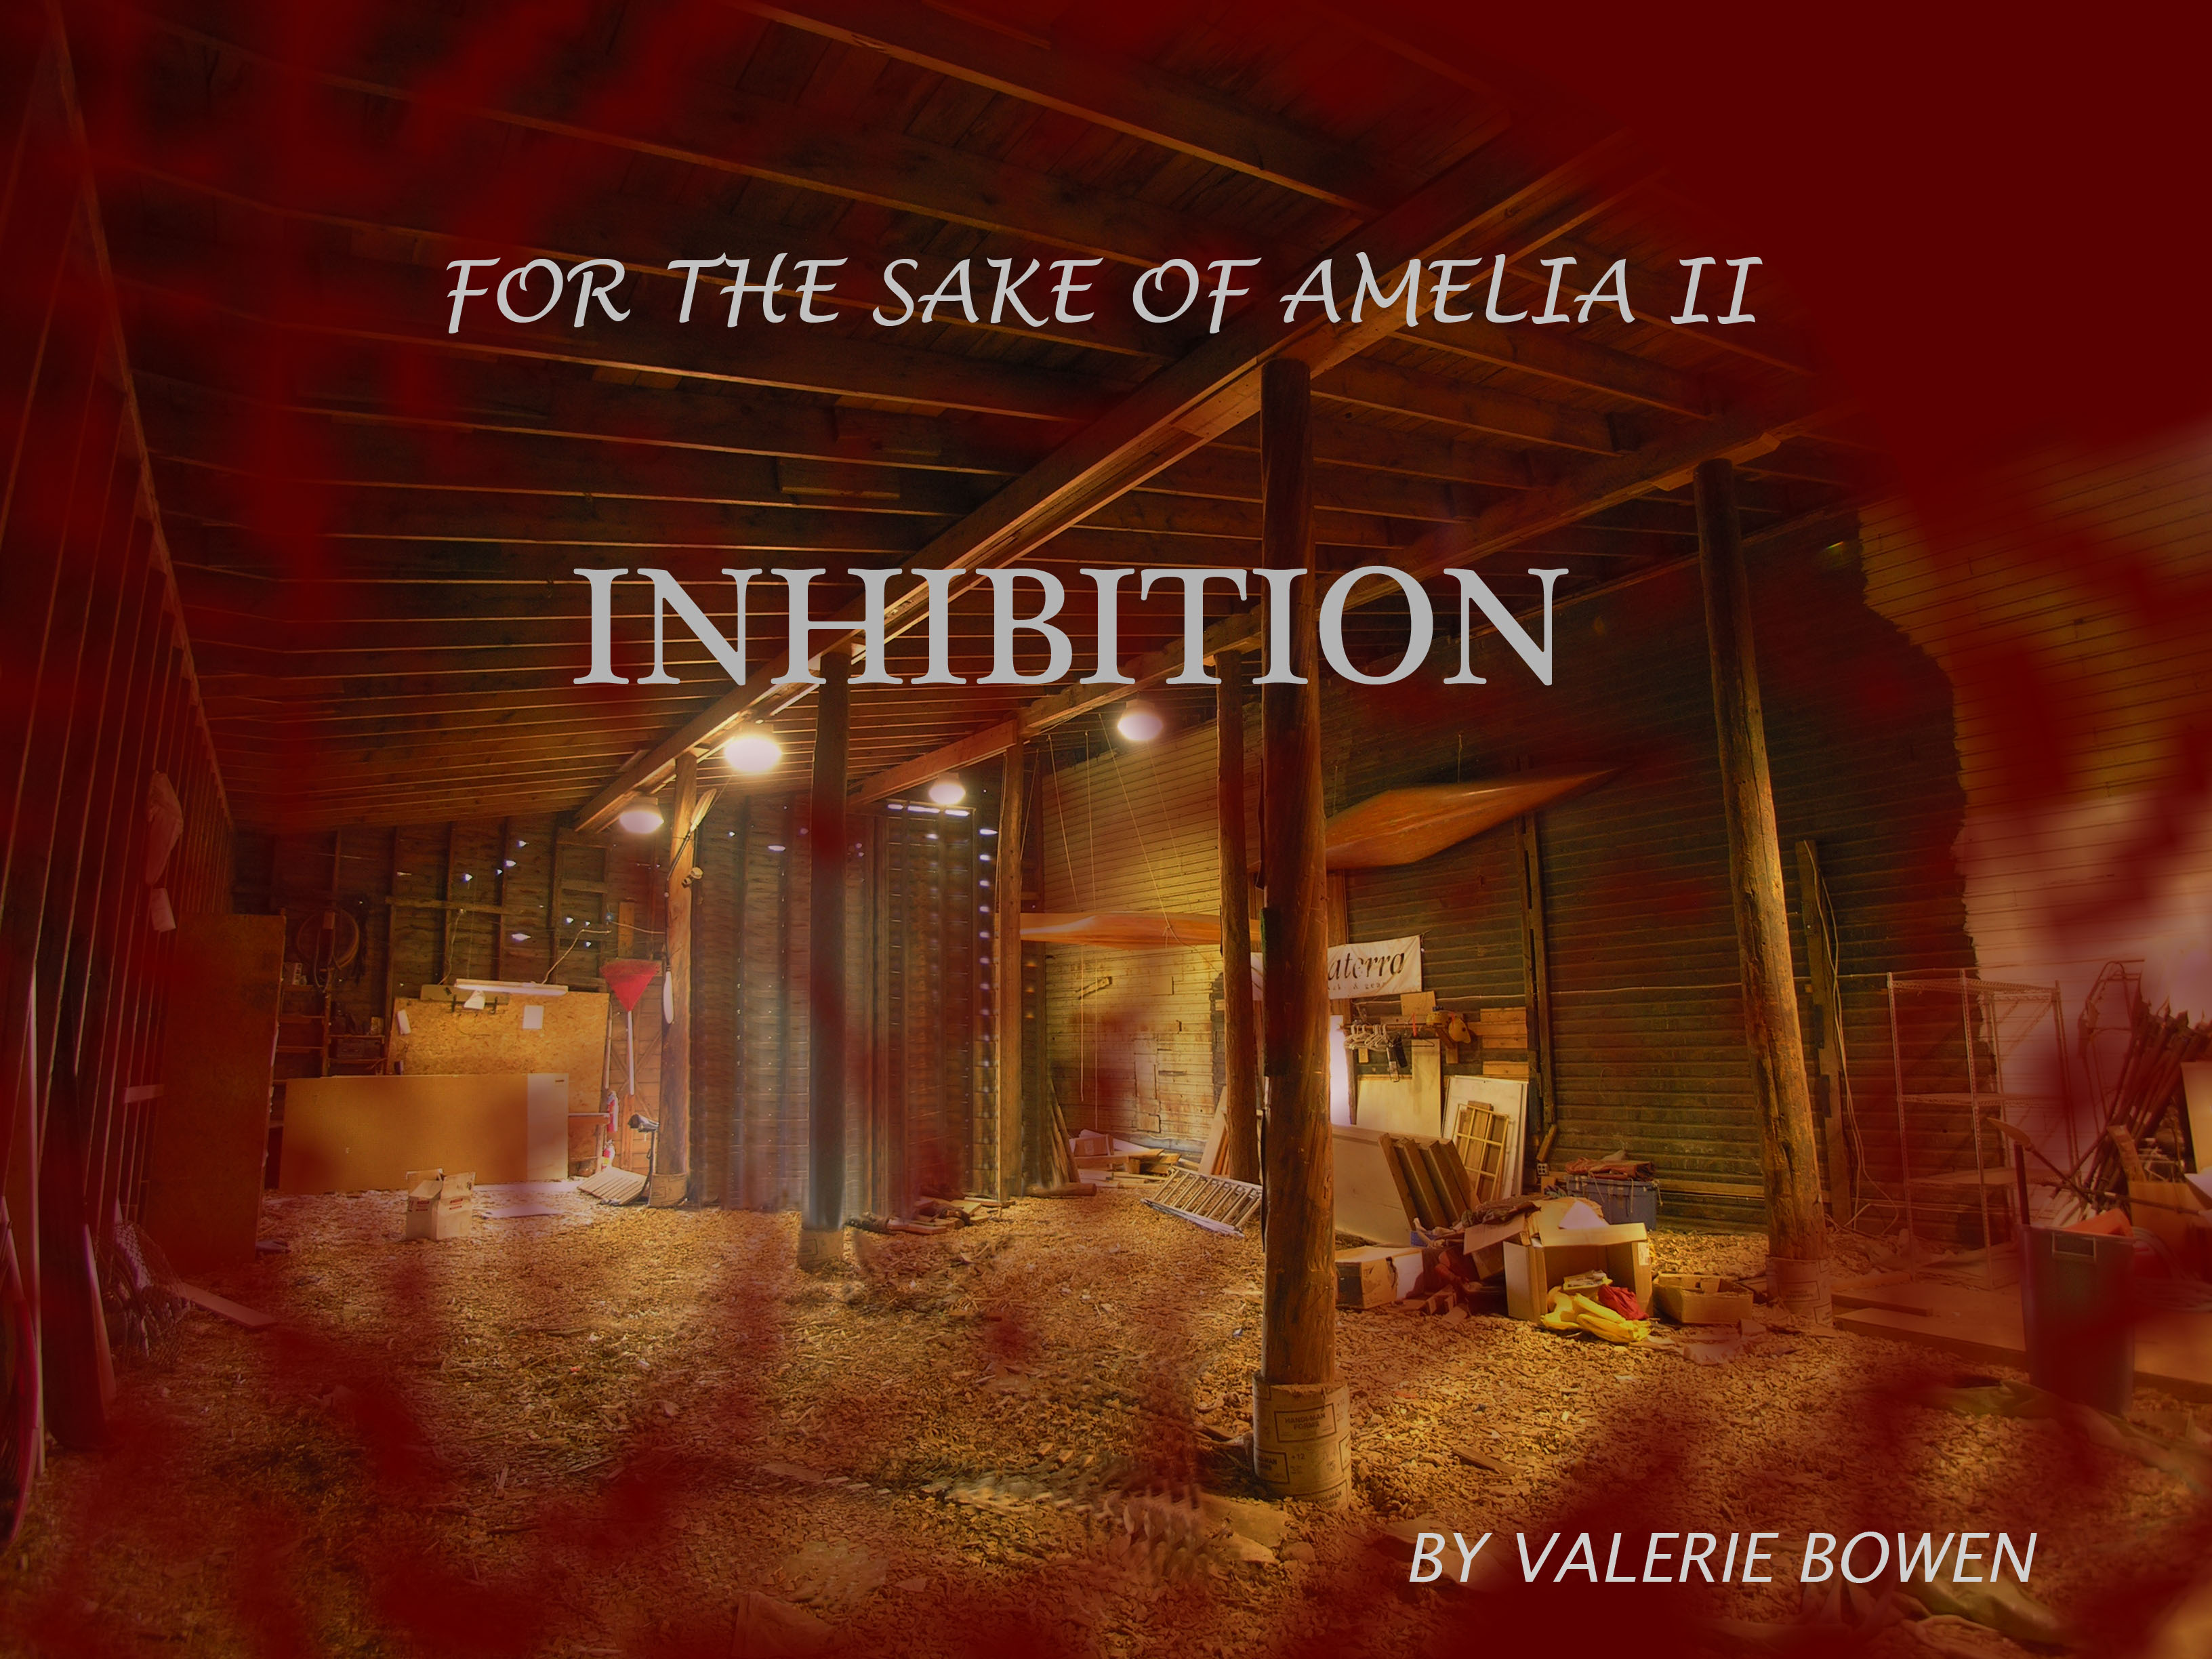 For the Sake of Amelia - Inhibition